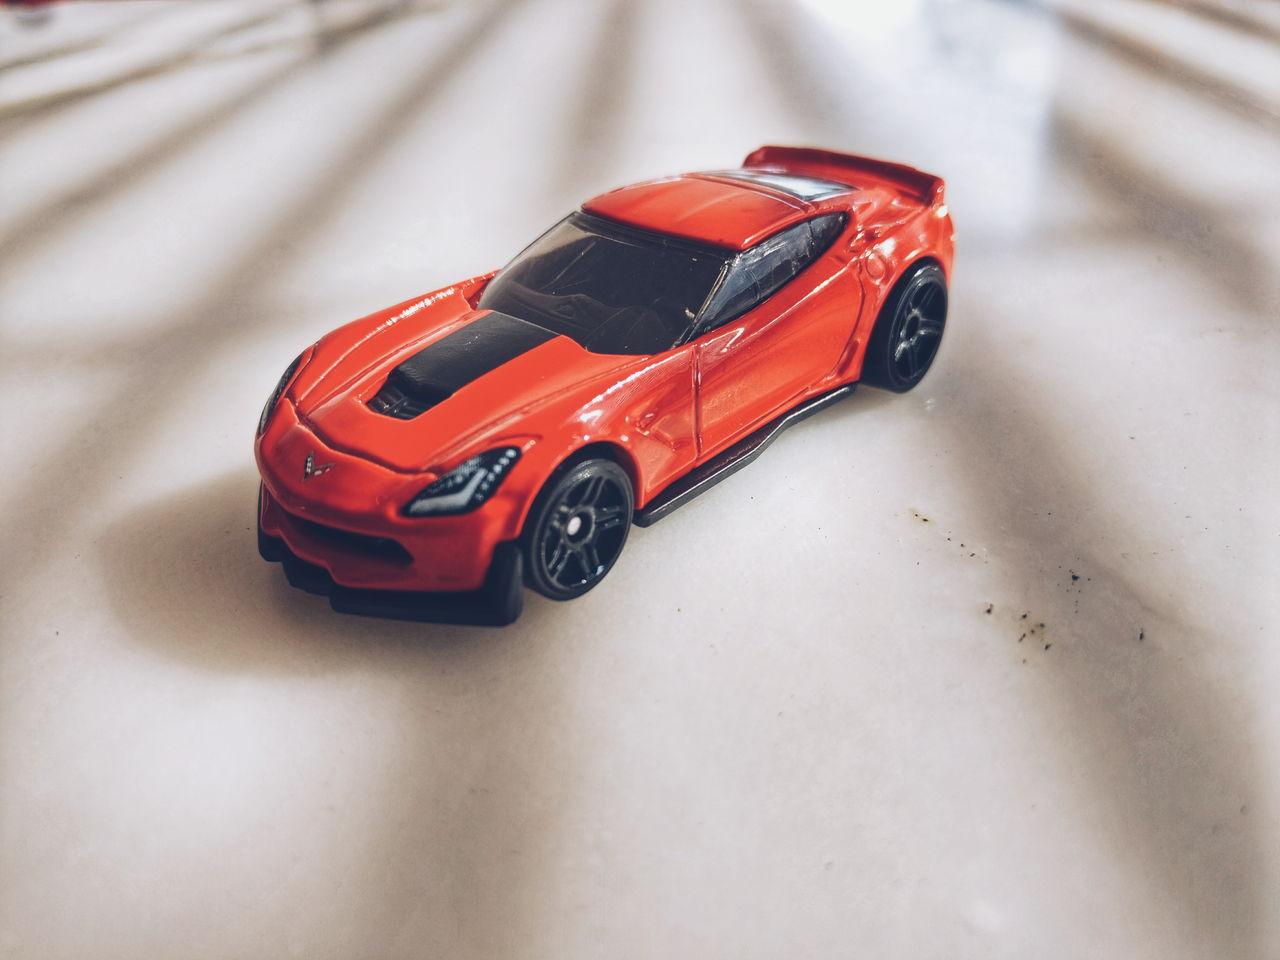 toy car, toy, red, car, land vehicle, childhood, transportation, mode of transport, no people, close-up, indoors, day